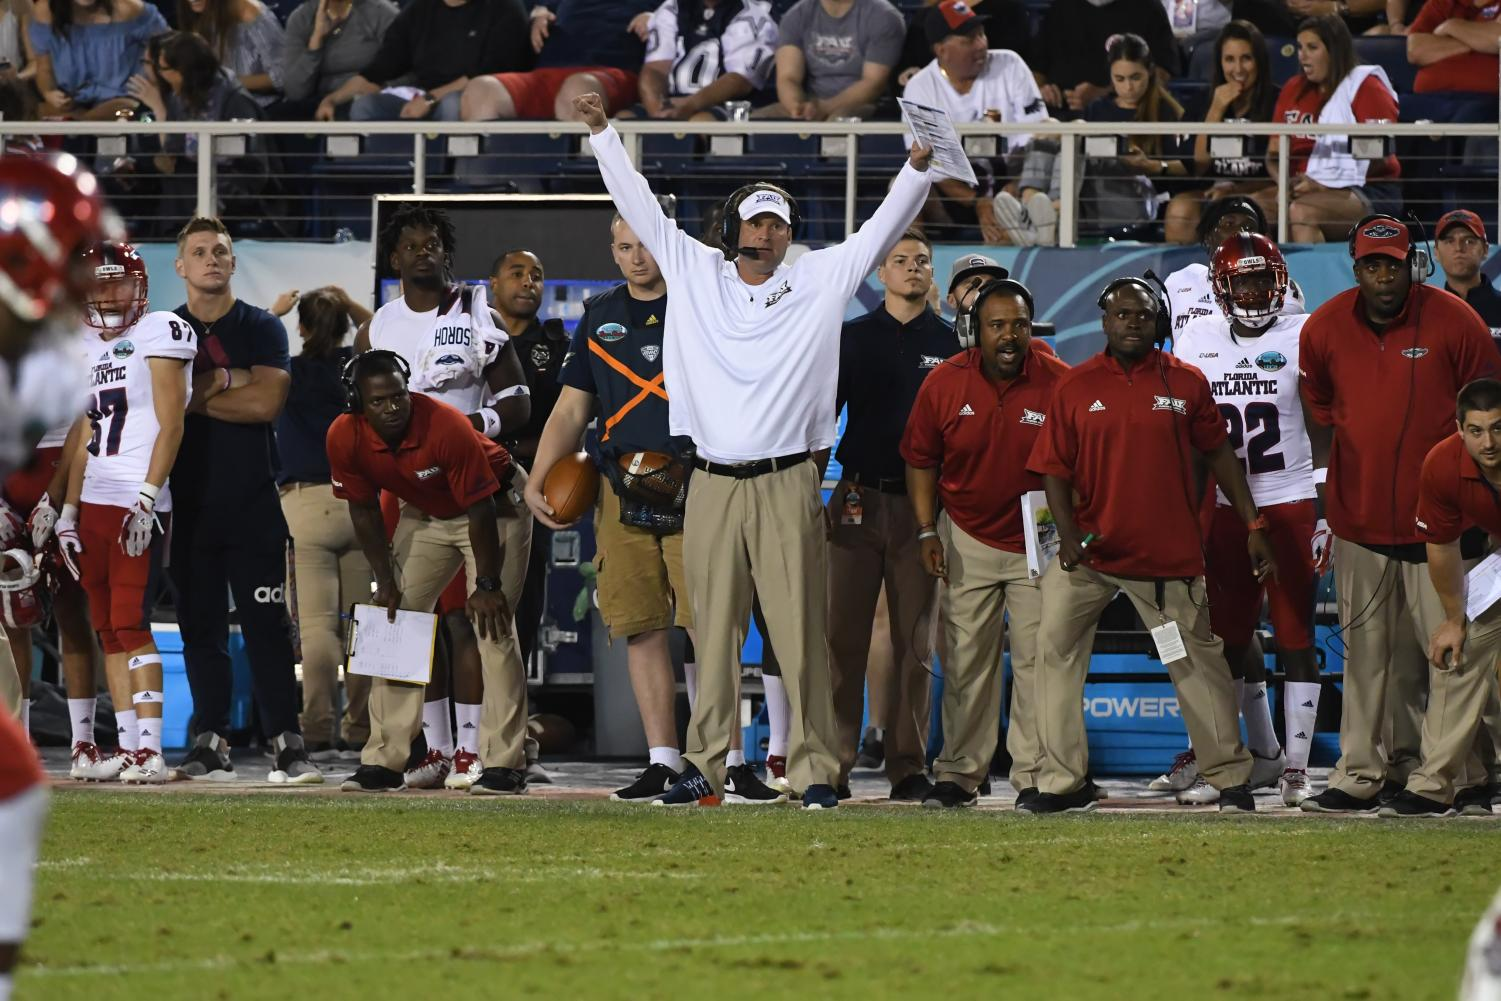 FAU's chase to repeat last season's dominance begins Sept. 1 at Oklahoma. Photo courtesy of FAU Media Relations